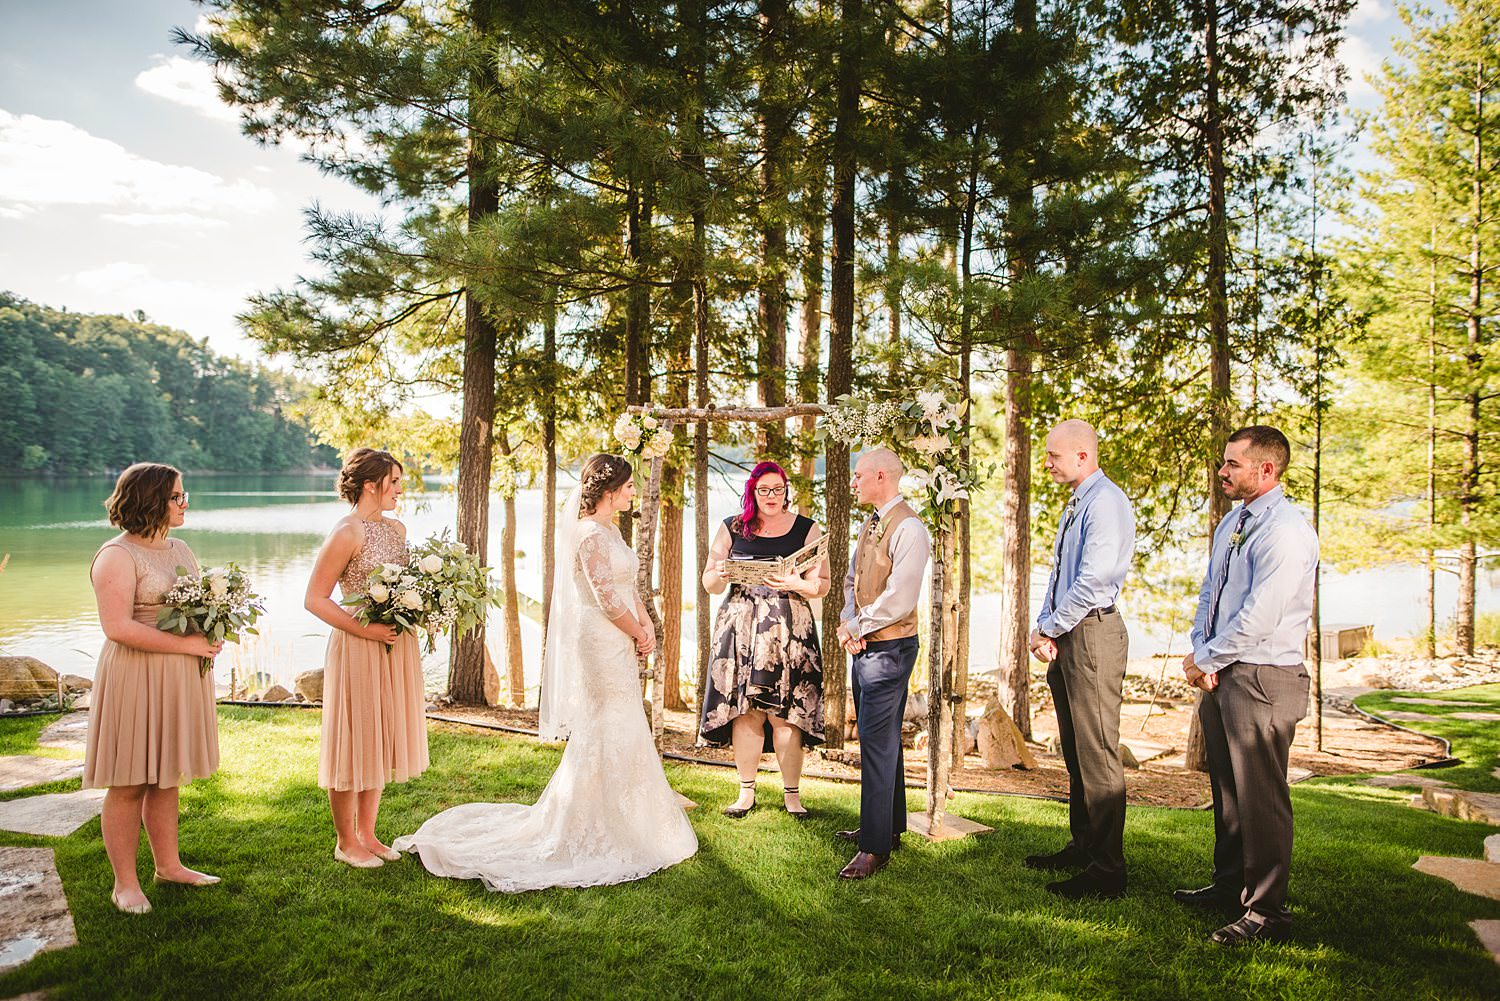 Northern Michigan Nature Backyard Elopement Intimate Wedding 54.jpg